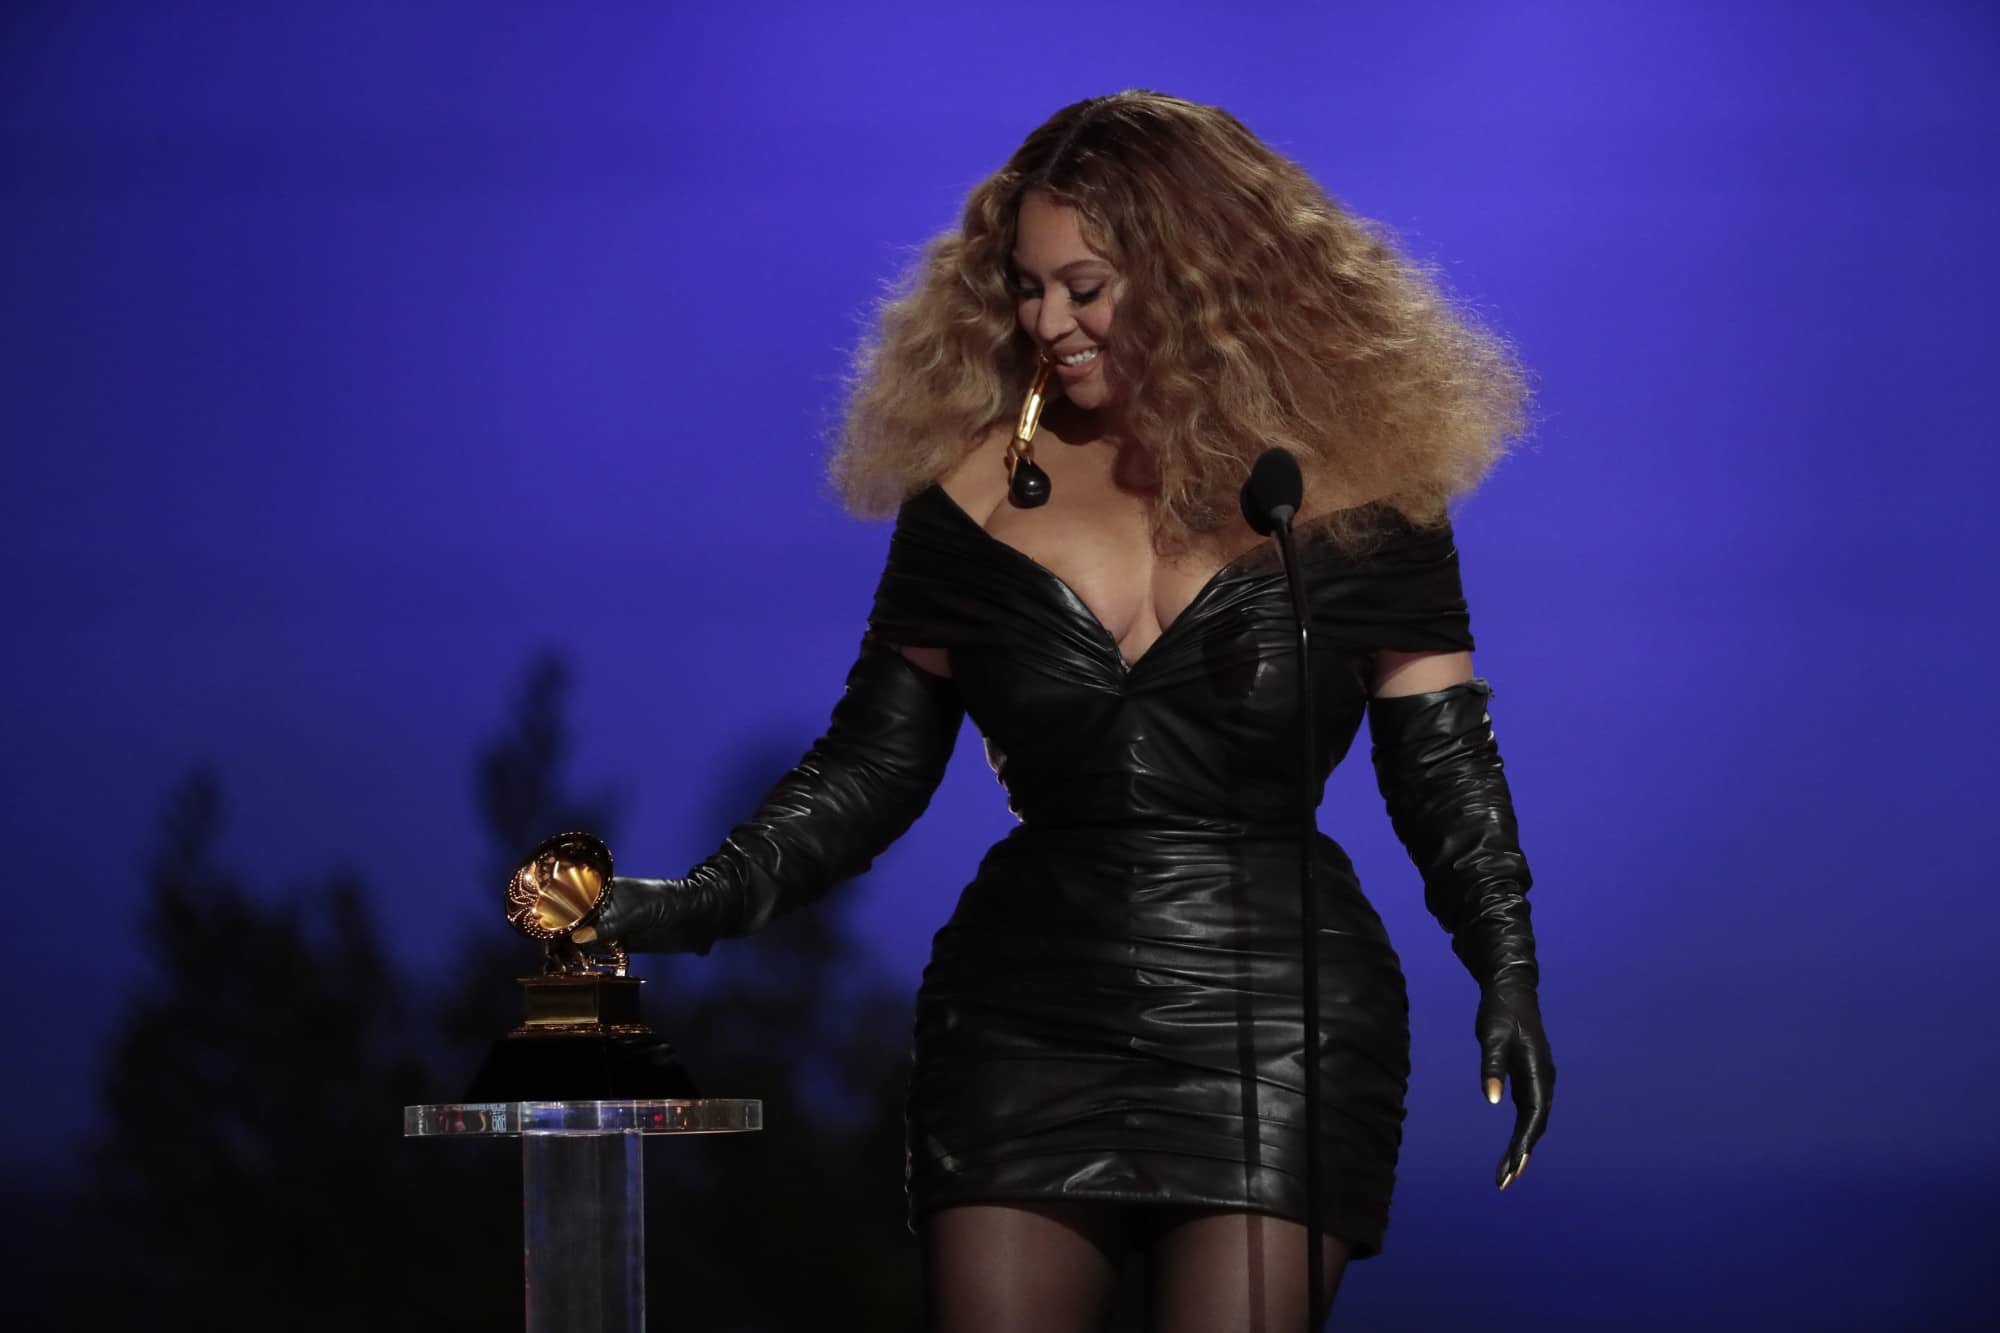 Grammy Awards 2021: Beyonce Becomes Most-Awarded Woman In The History Of The Awards With Her 28th Win